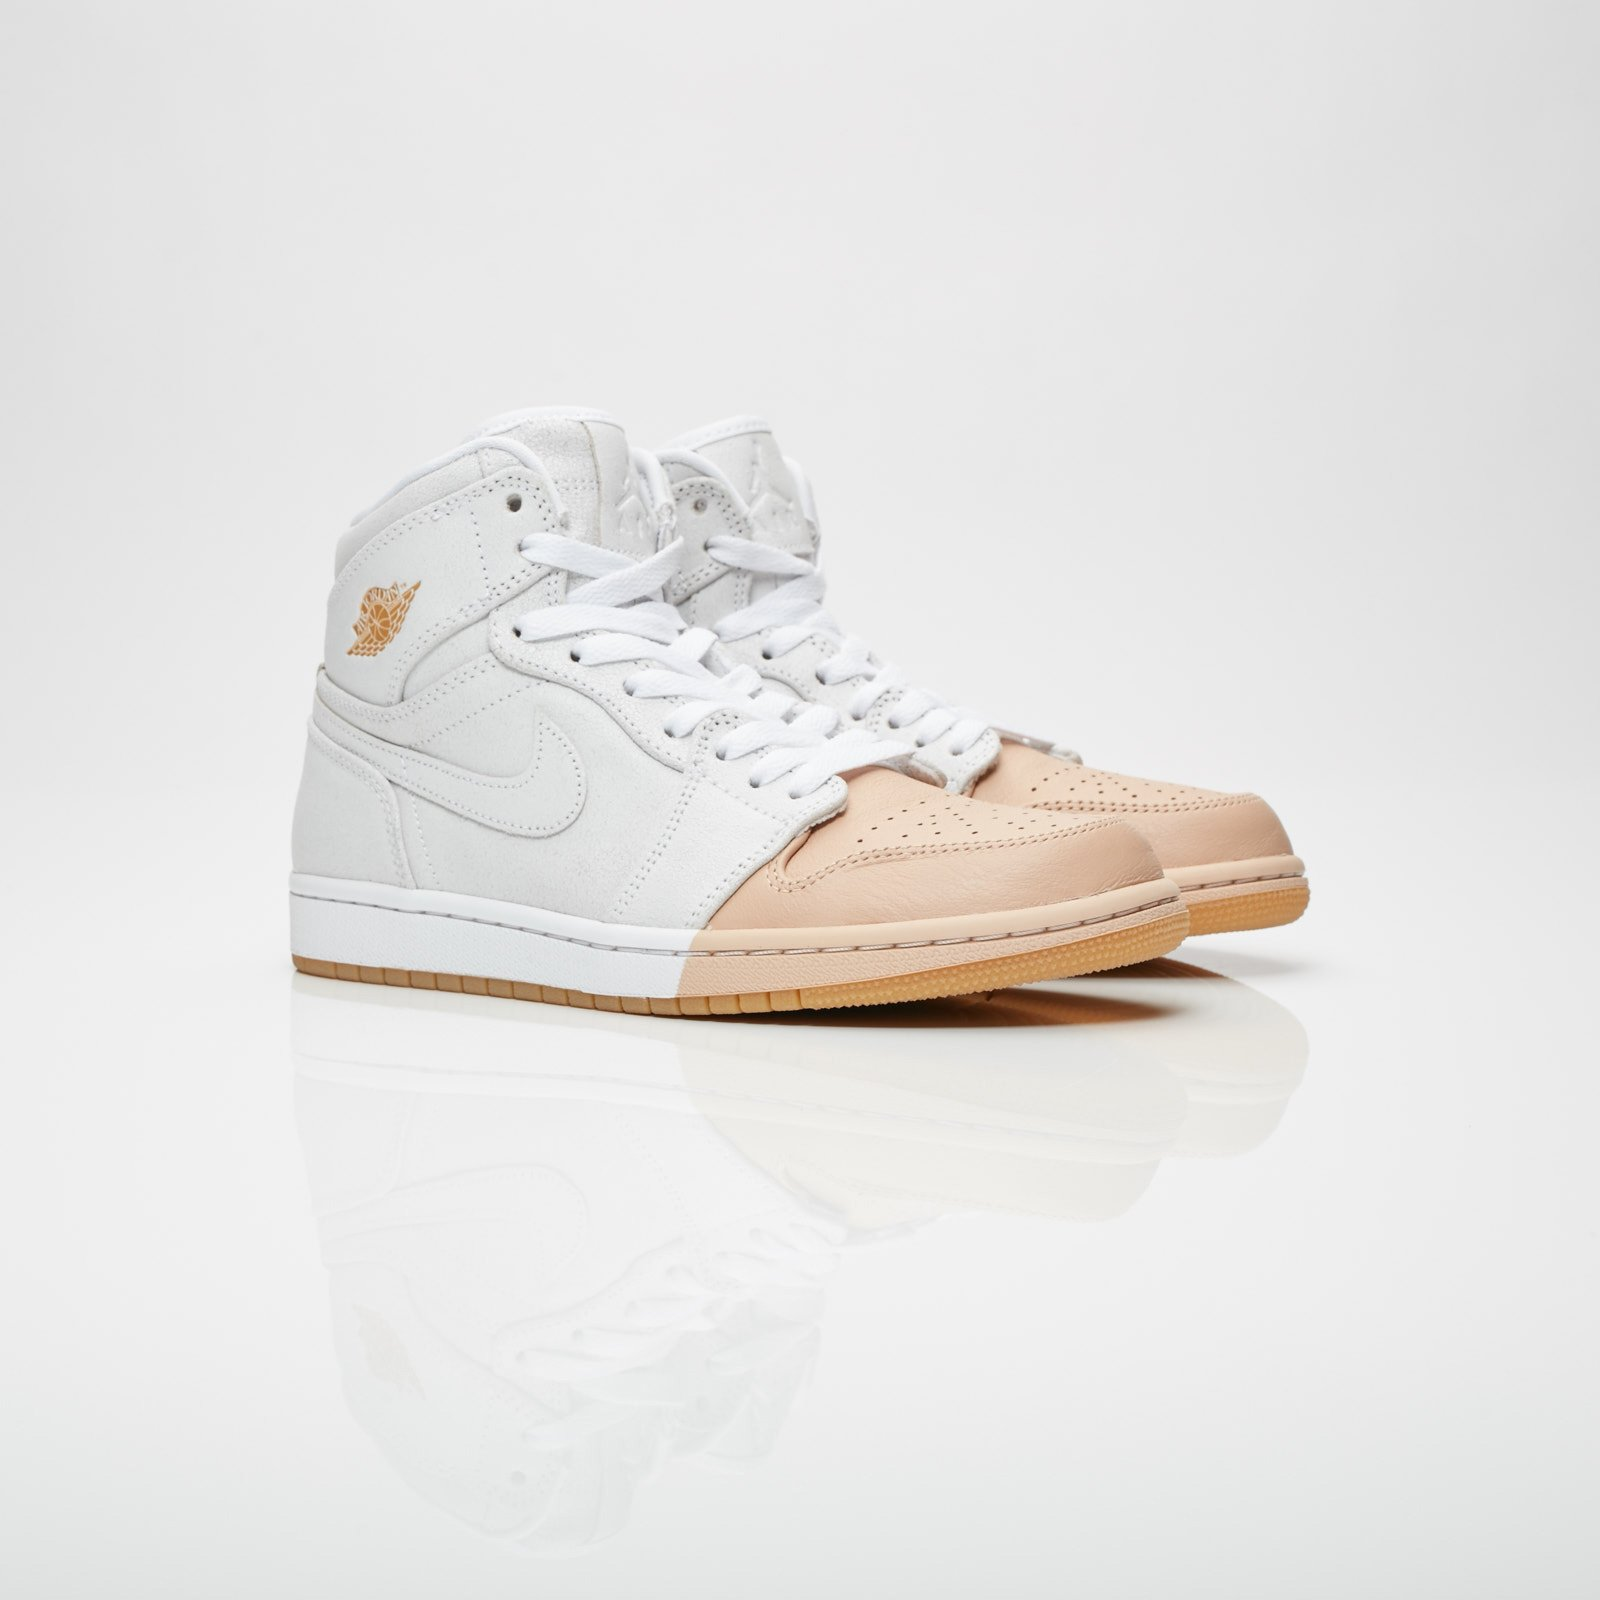 the latest 6fda4 137ad Jordan Brand Wmns Air Jordan 1 Retro Hi Premium